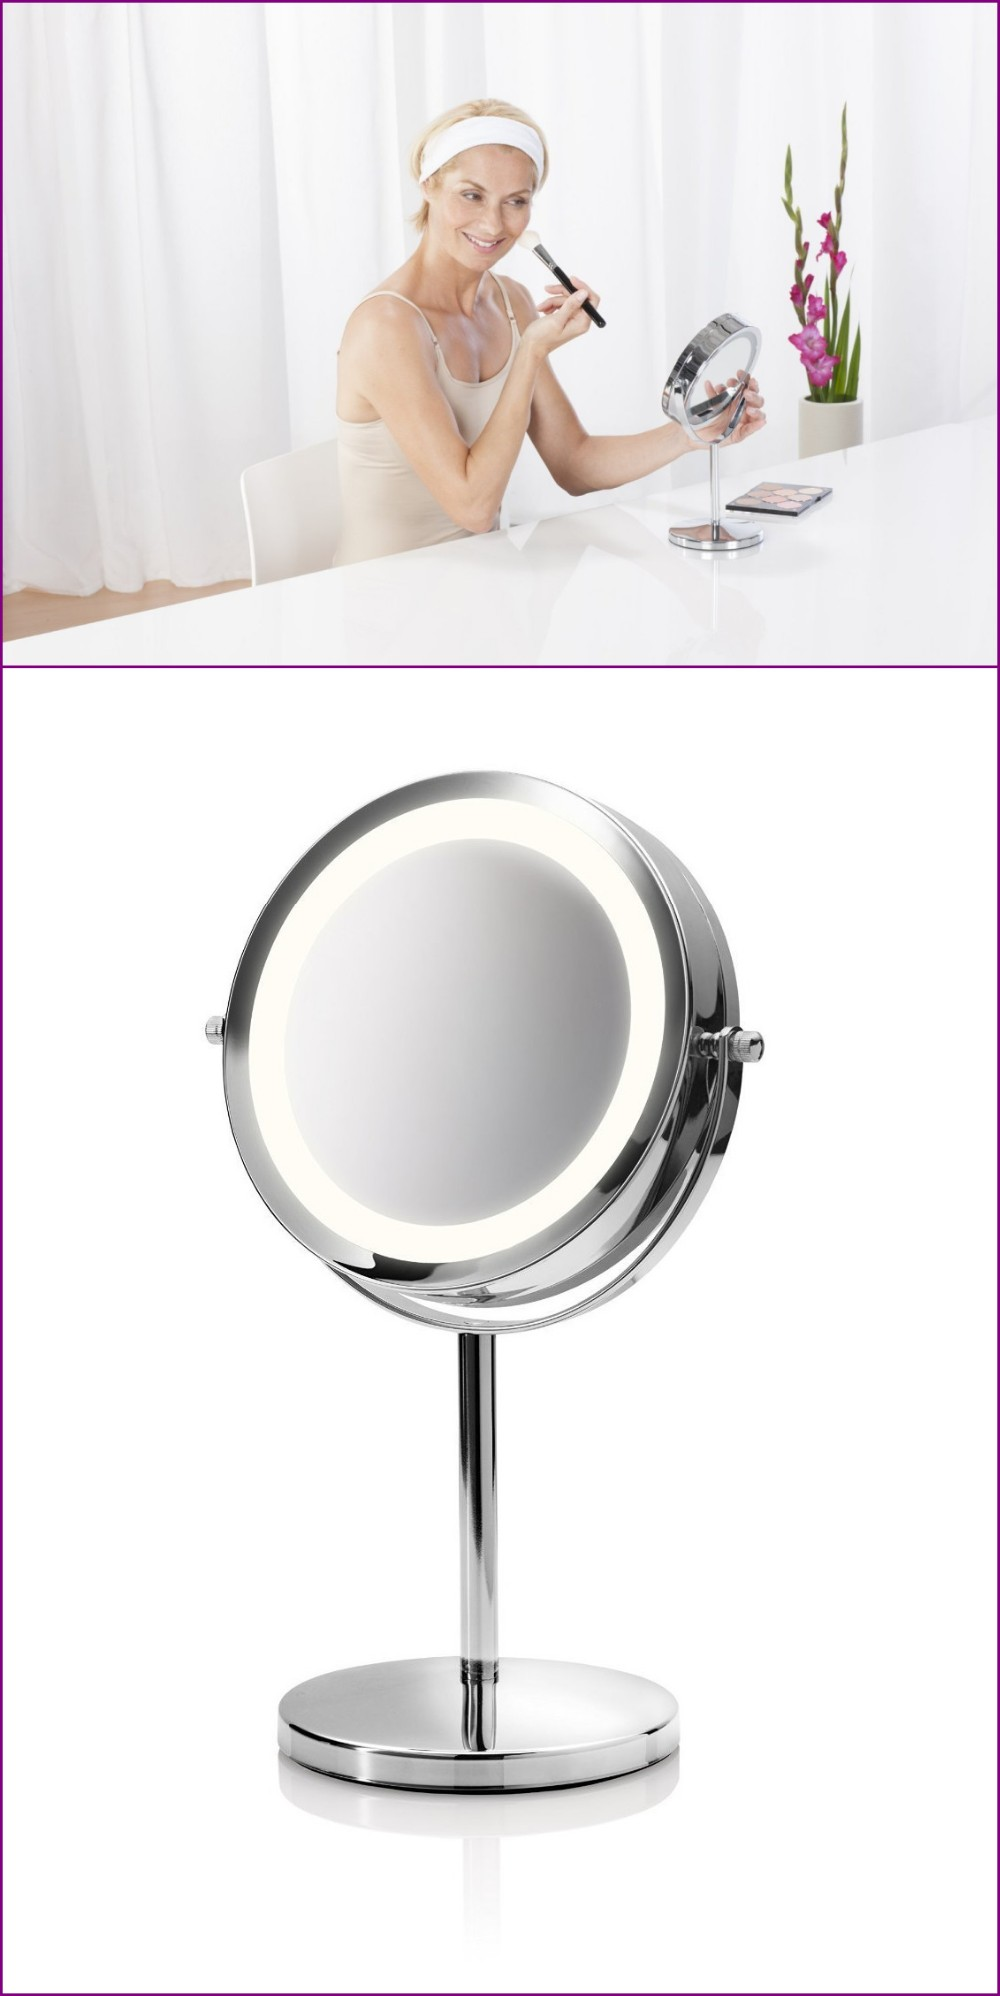 Hot Selling Professional Round Lighted Cosmetic Standing